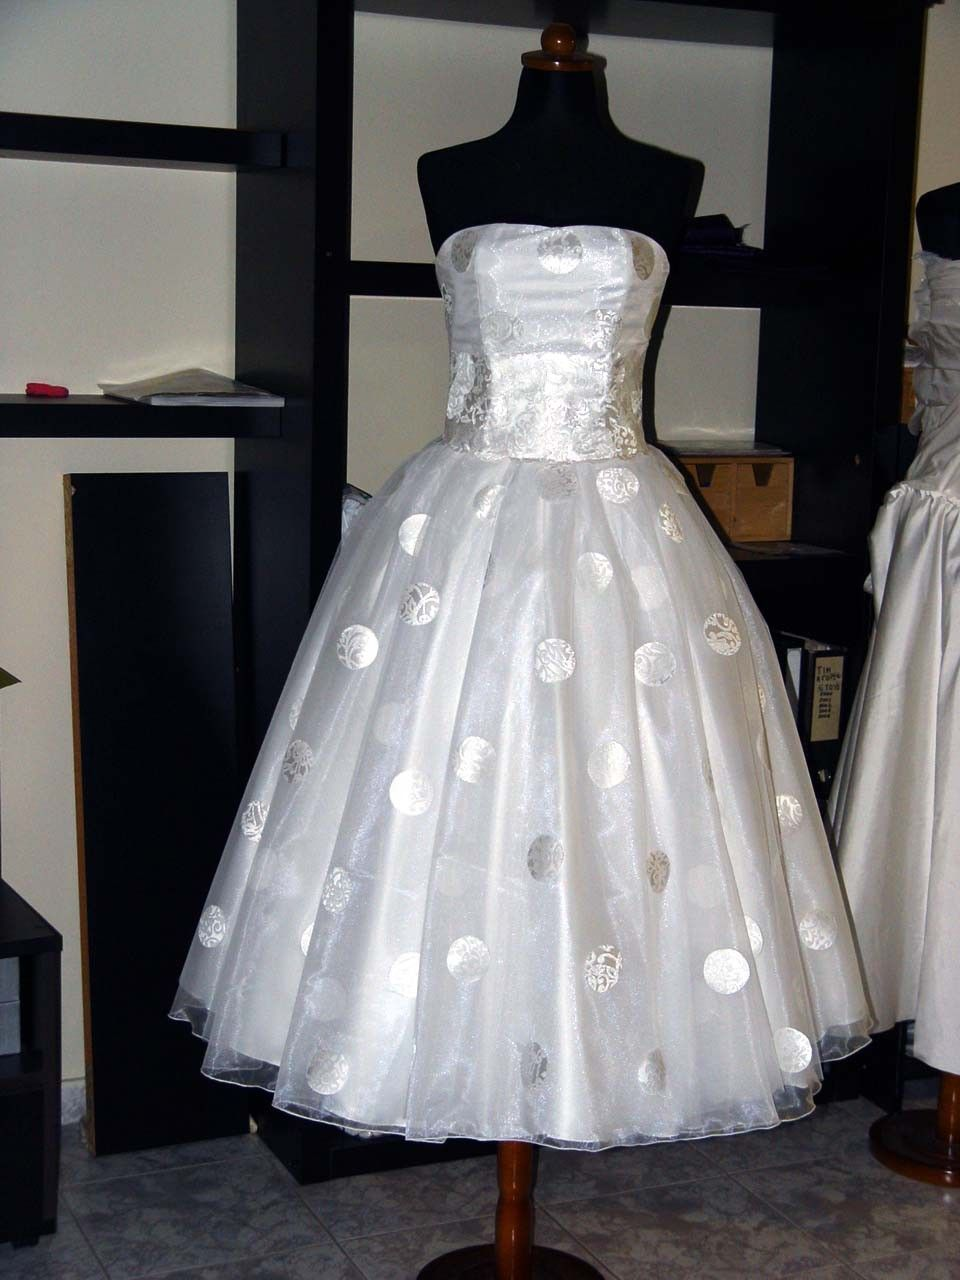 I love the vintage look of this dress it's as cute as a button